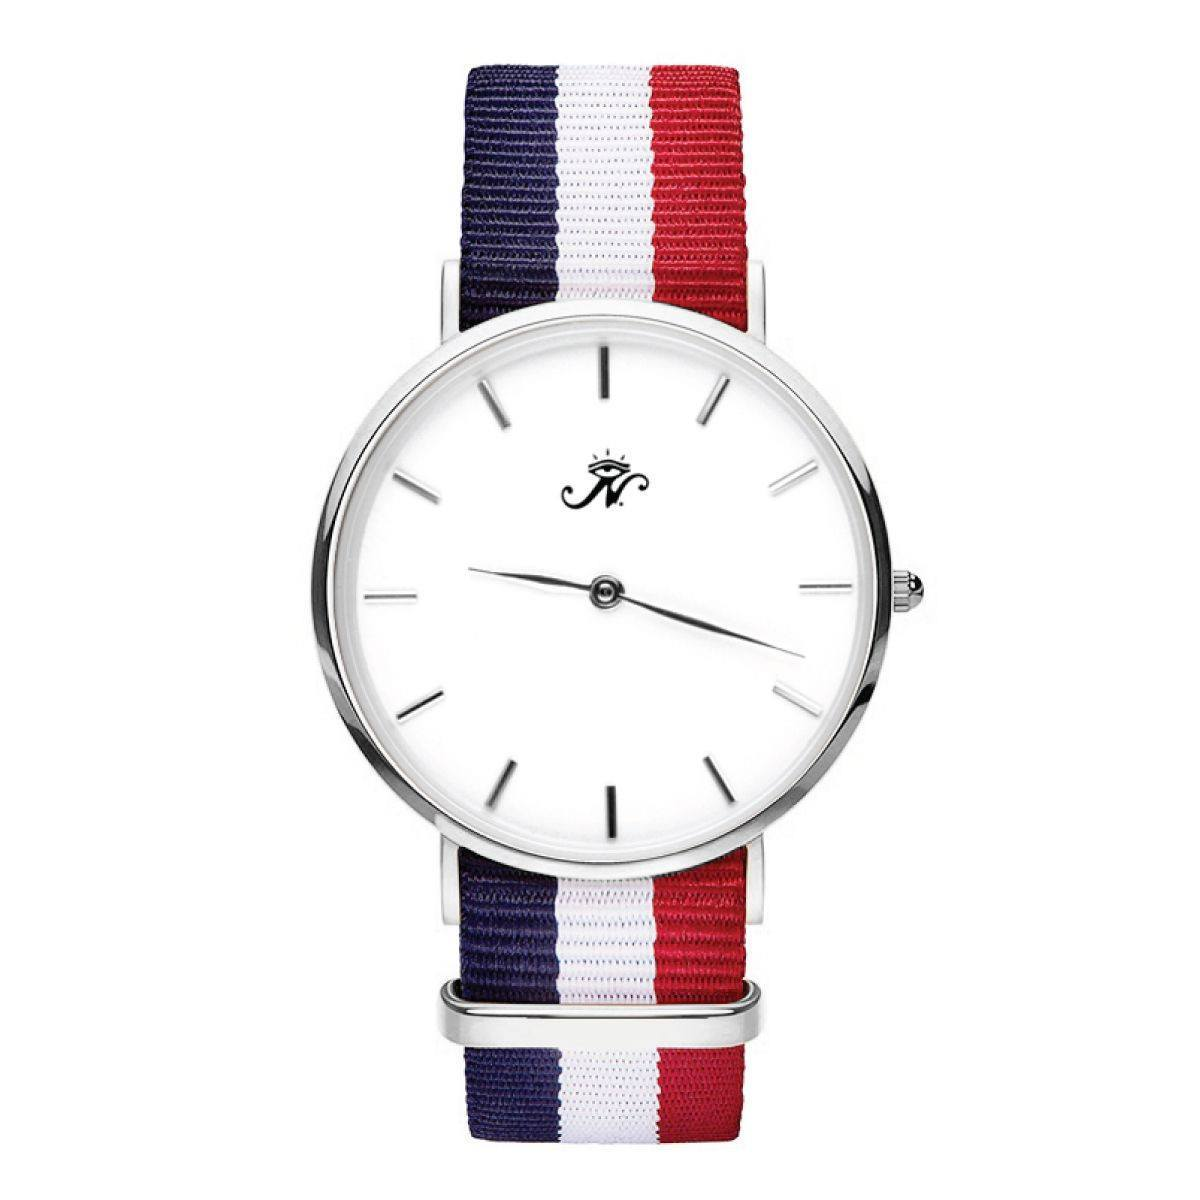 Royal York - Silver Timepiece with NATO Strap